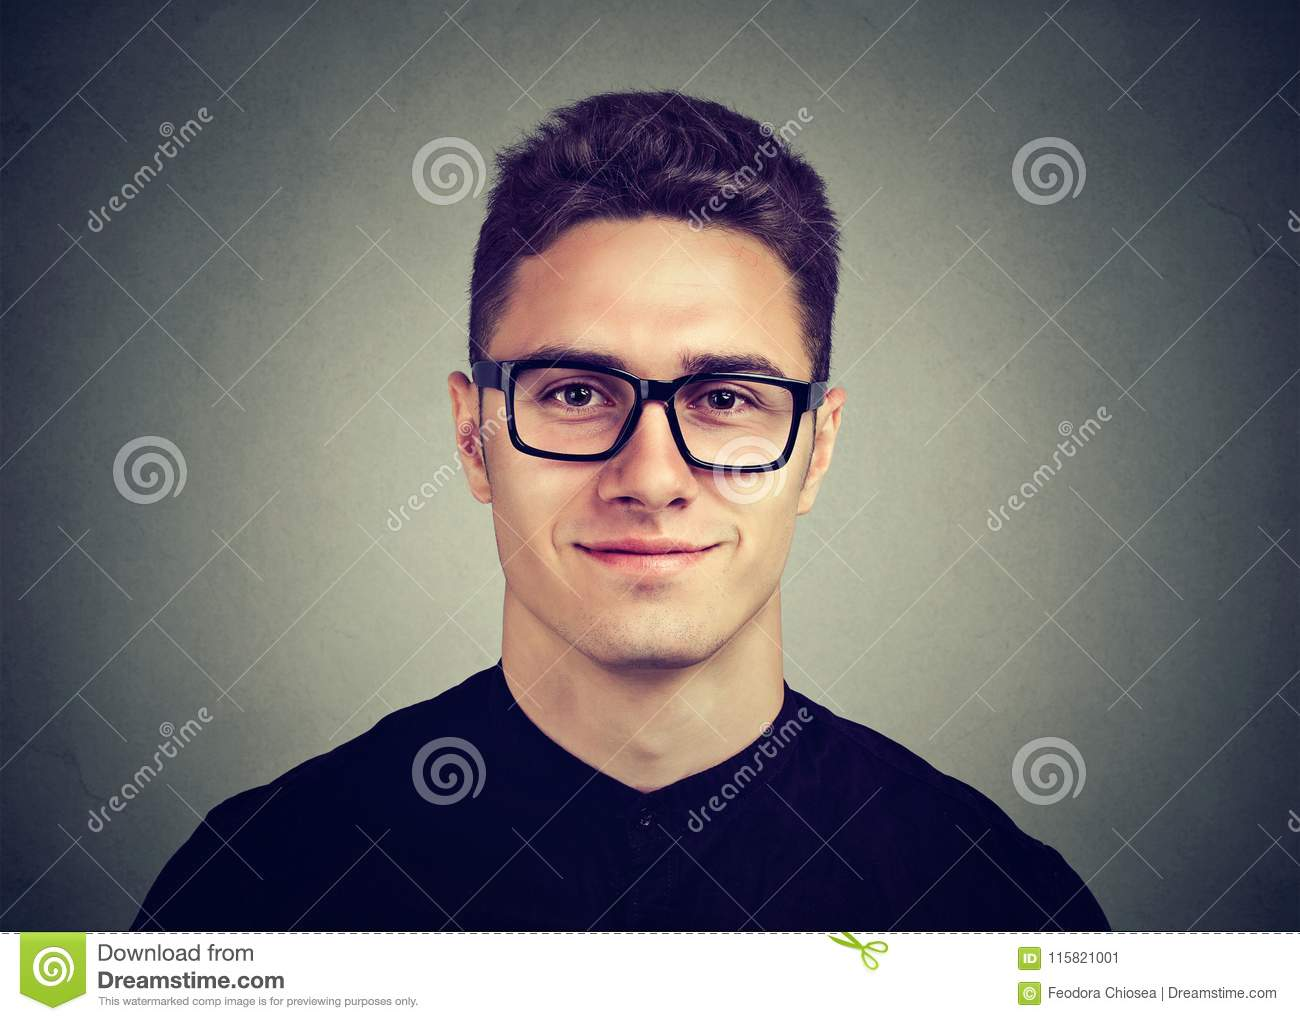 16e0a25e6 Smiling Attractive Man In Glasses With A Modern Hairstyle Stock ...